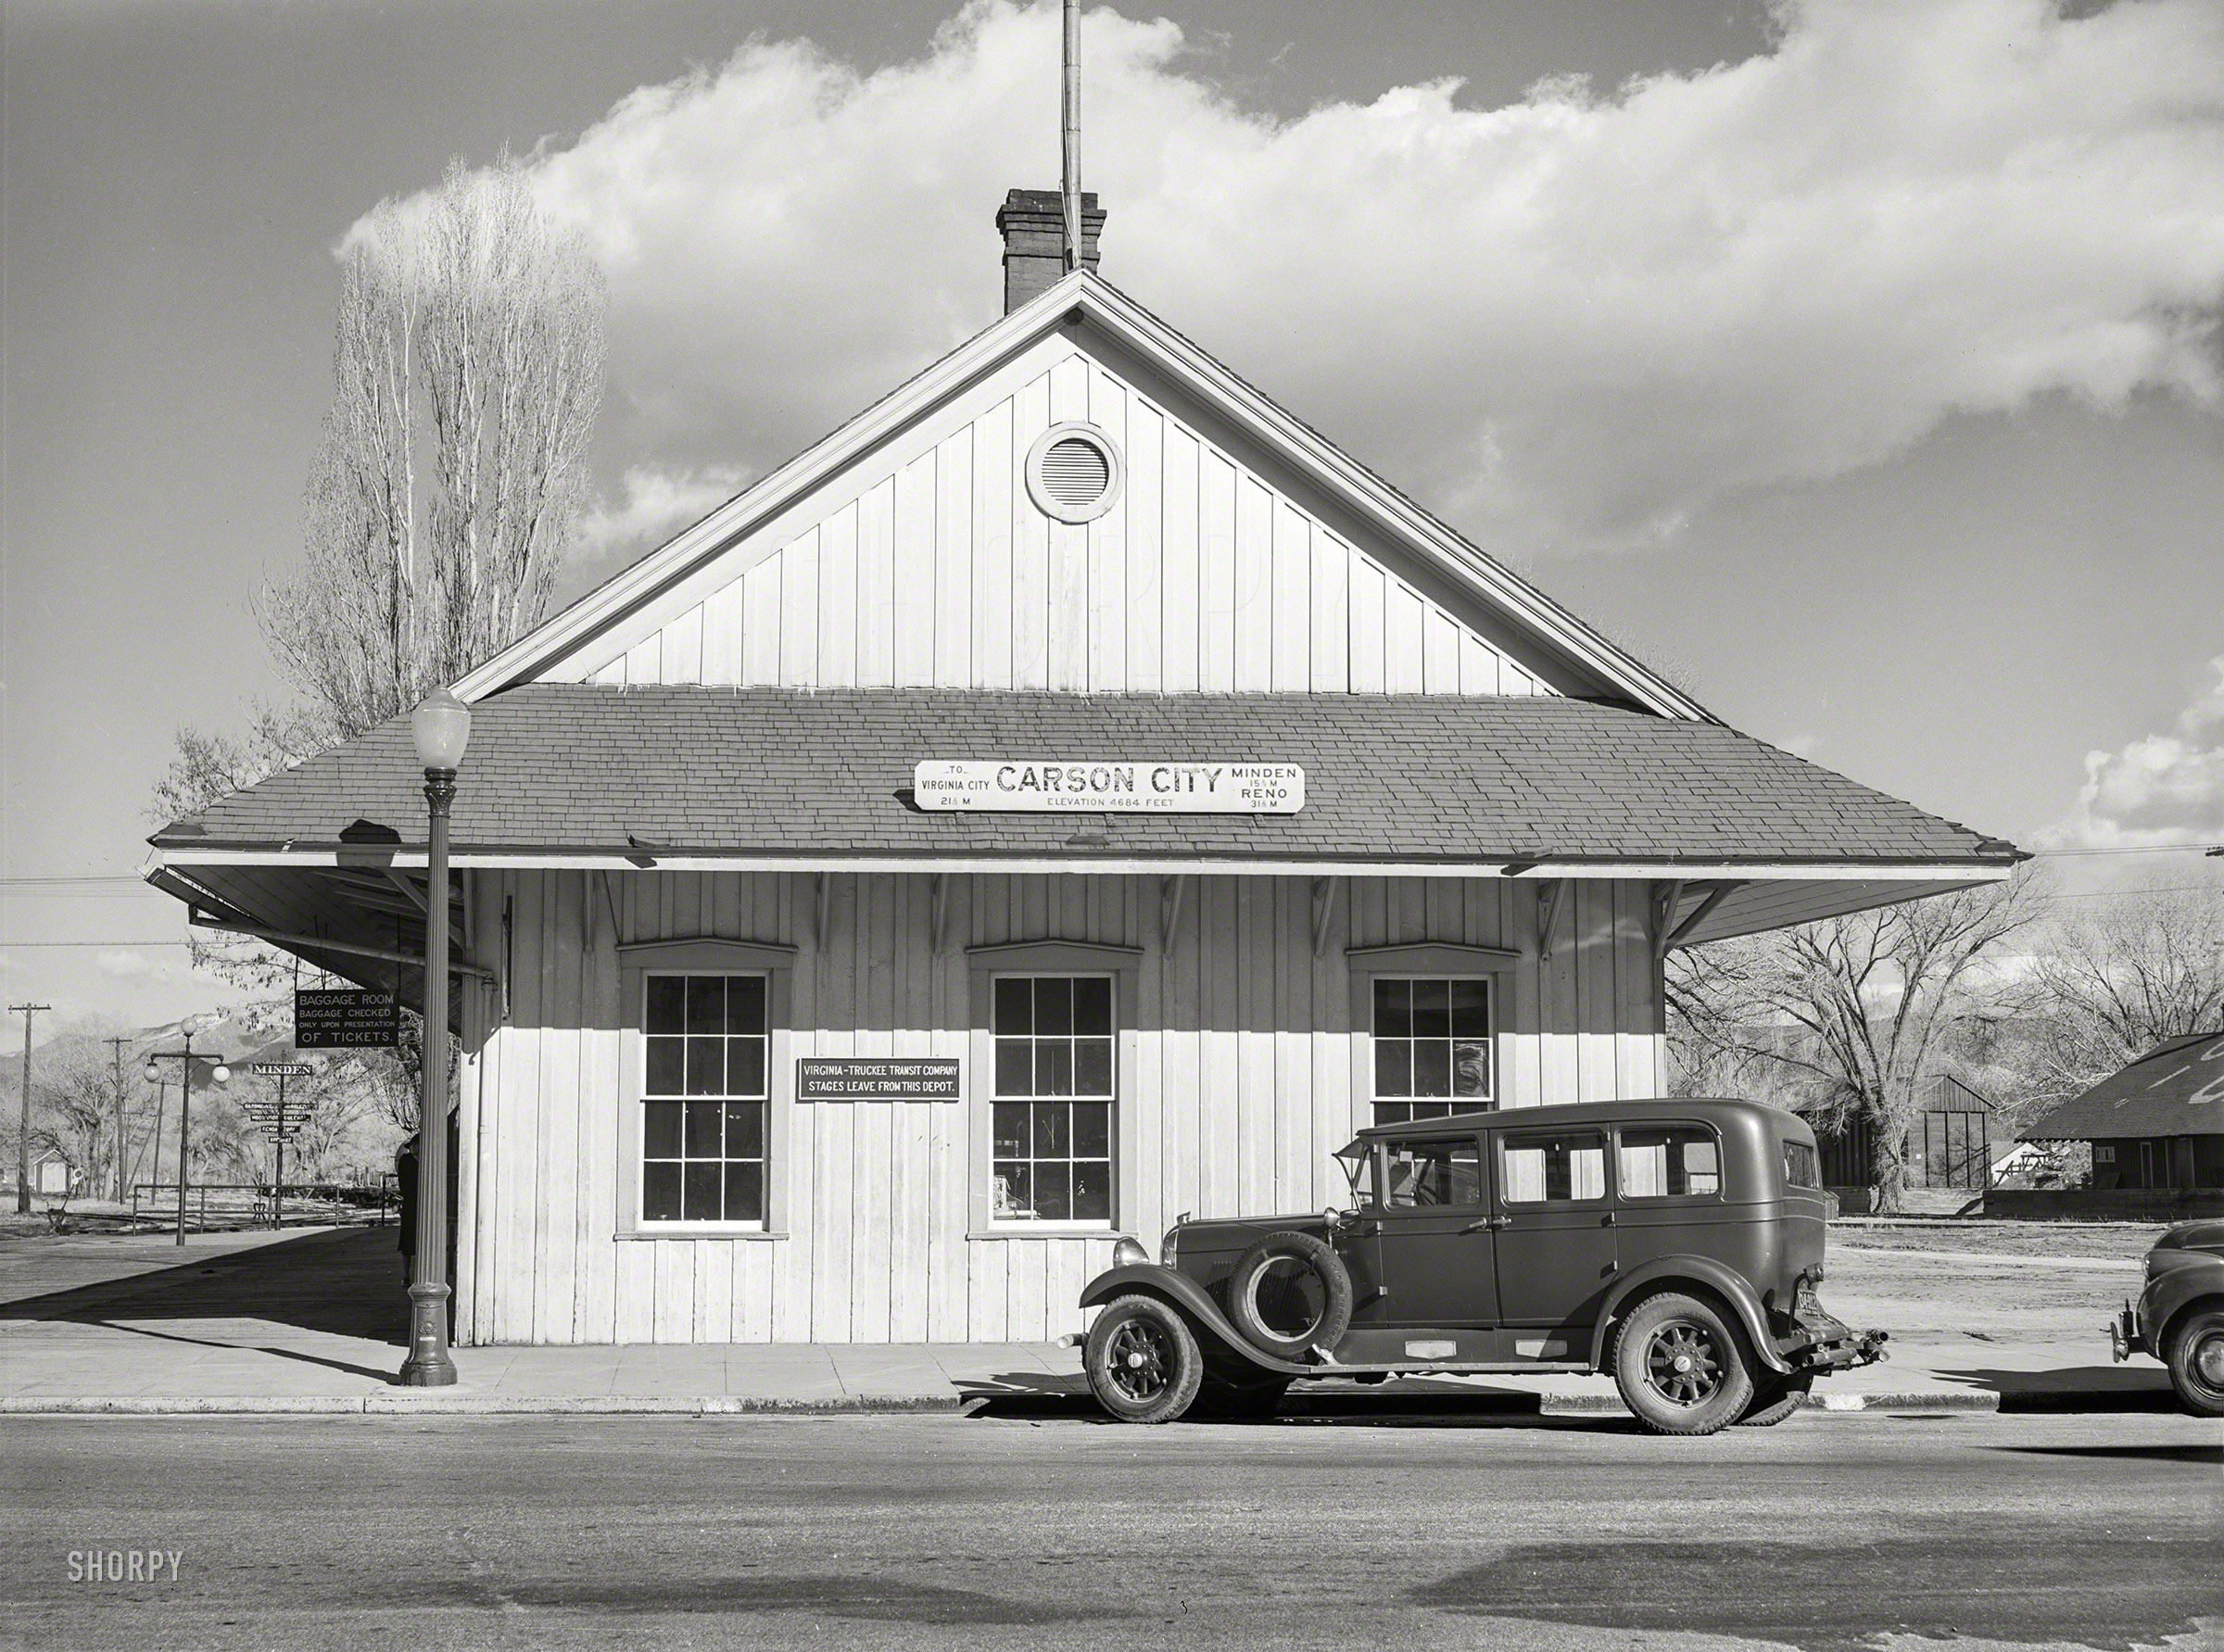 Shorpy Historic Picture Archive C C Depot 1940 High Resolution